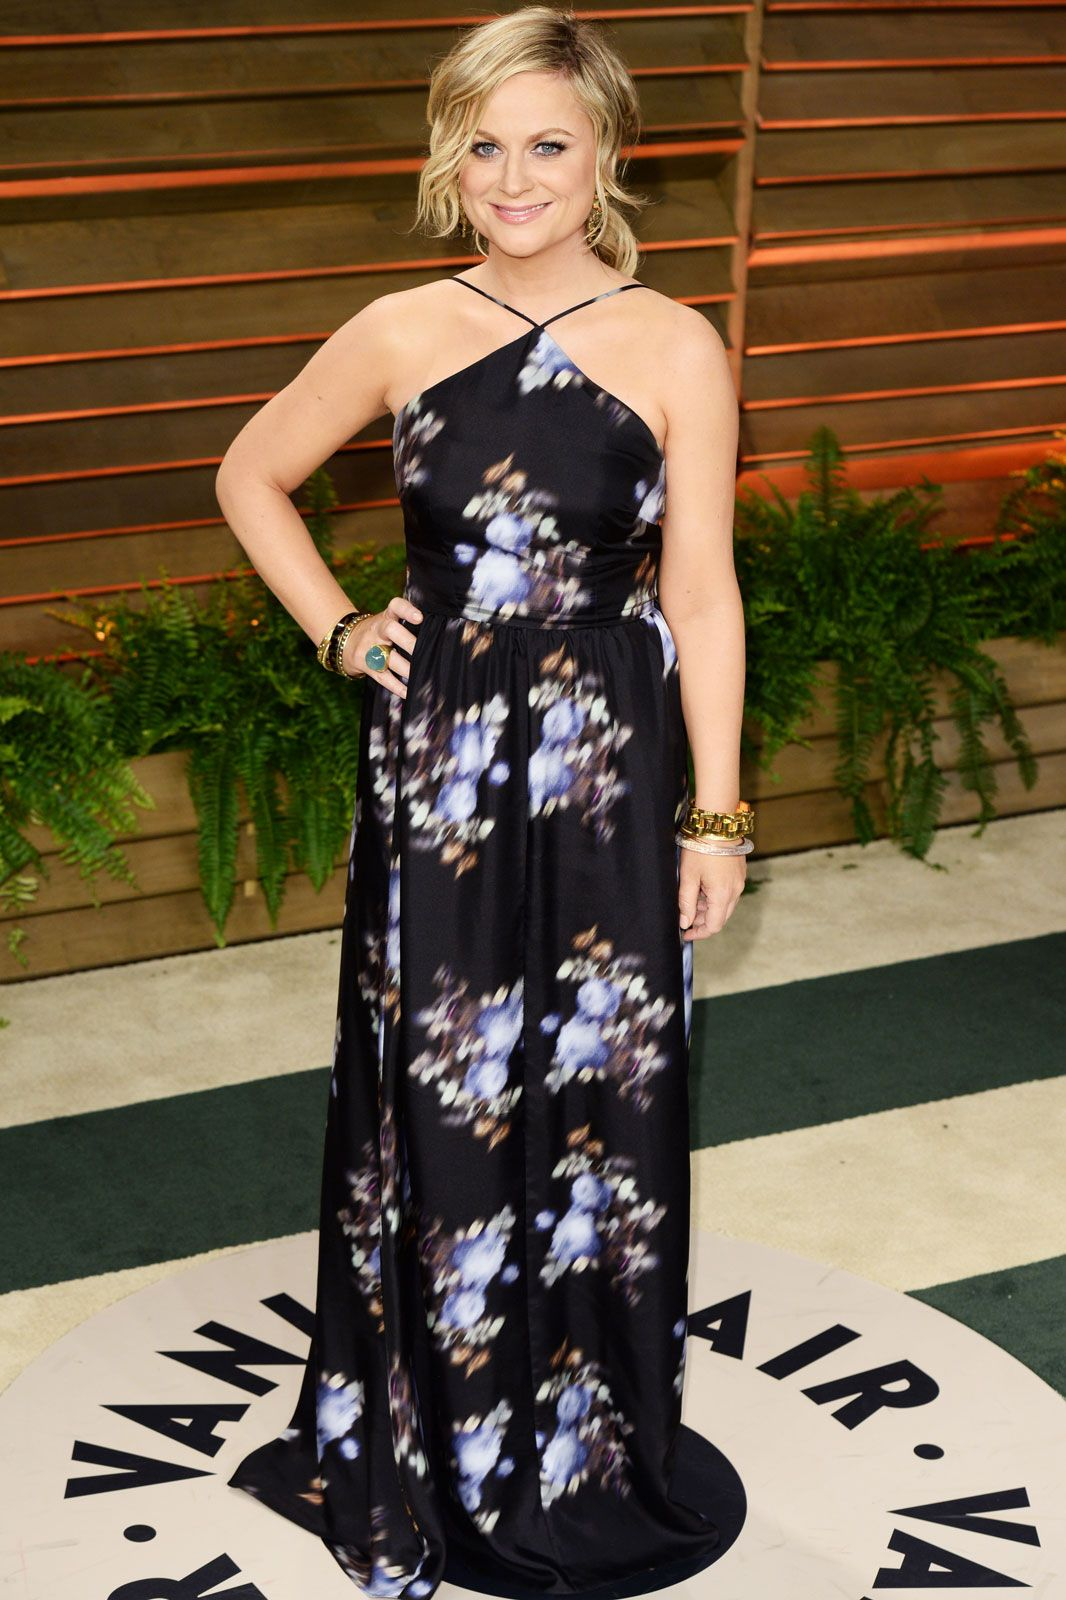 While Leslie Knope may be more of a solids- and suits-wearing kinda lady, Amy Poehler pleasantly surprised us in this printed Peter Som dress.